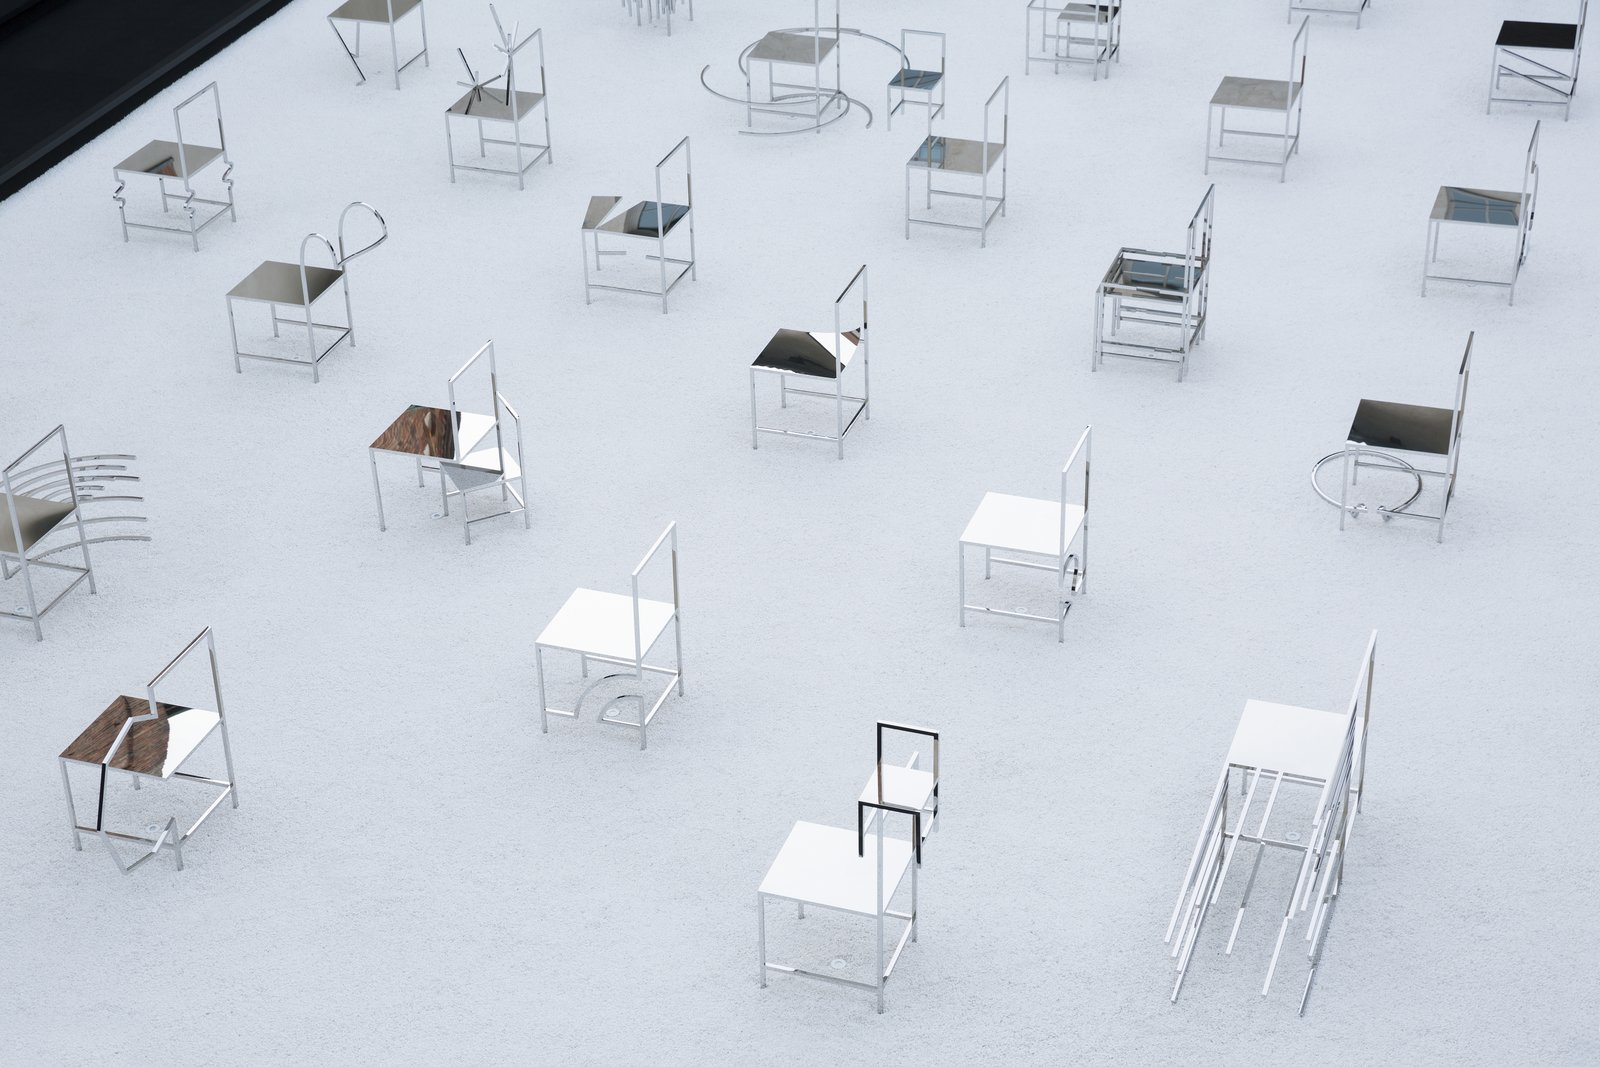 The installation consists of 50 stainless steal chairs.